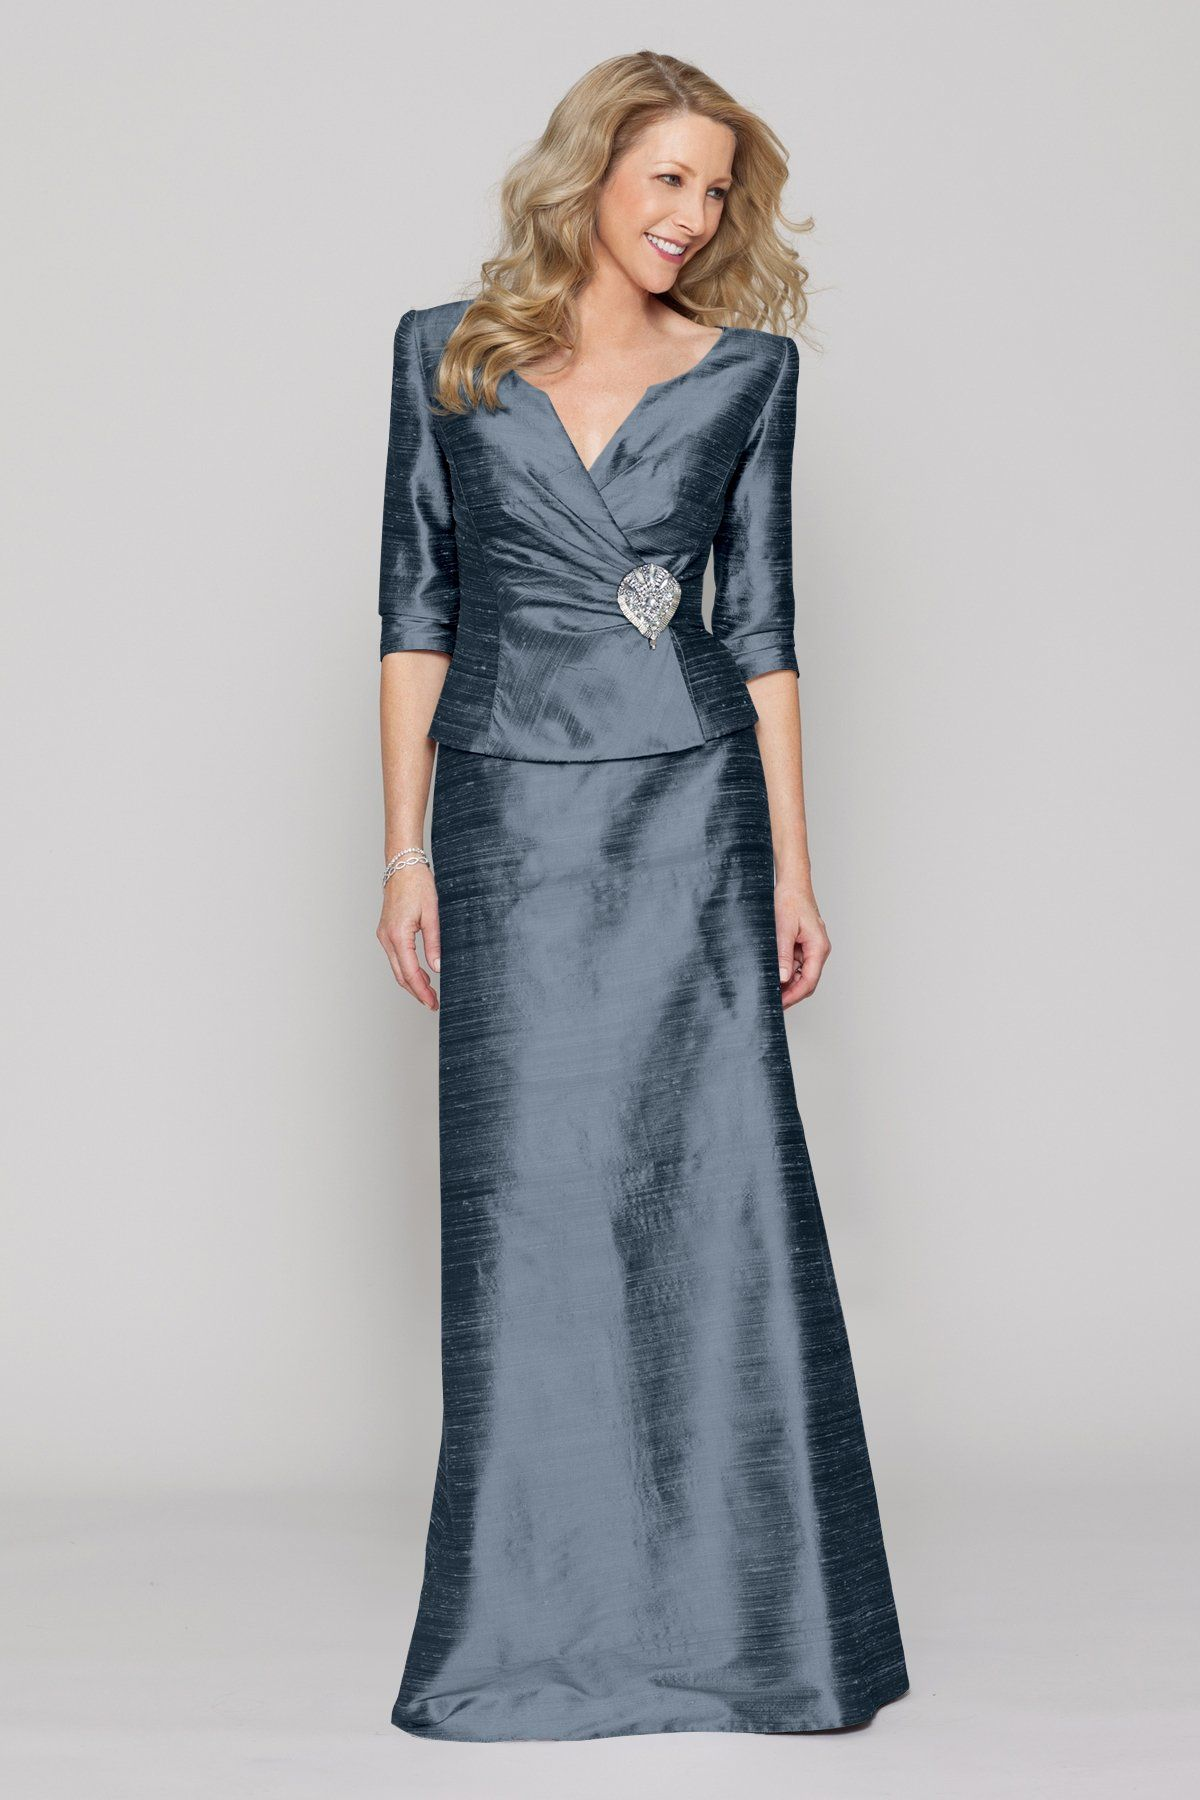 Slate Blue Watters C20 Special Occasion Dresses - Style 2481 [2481 ...